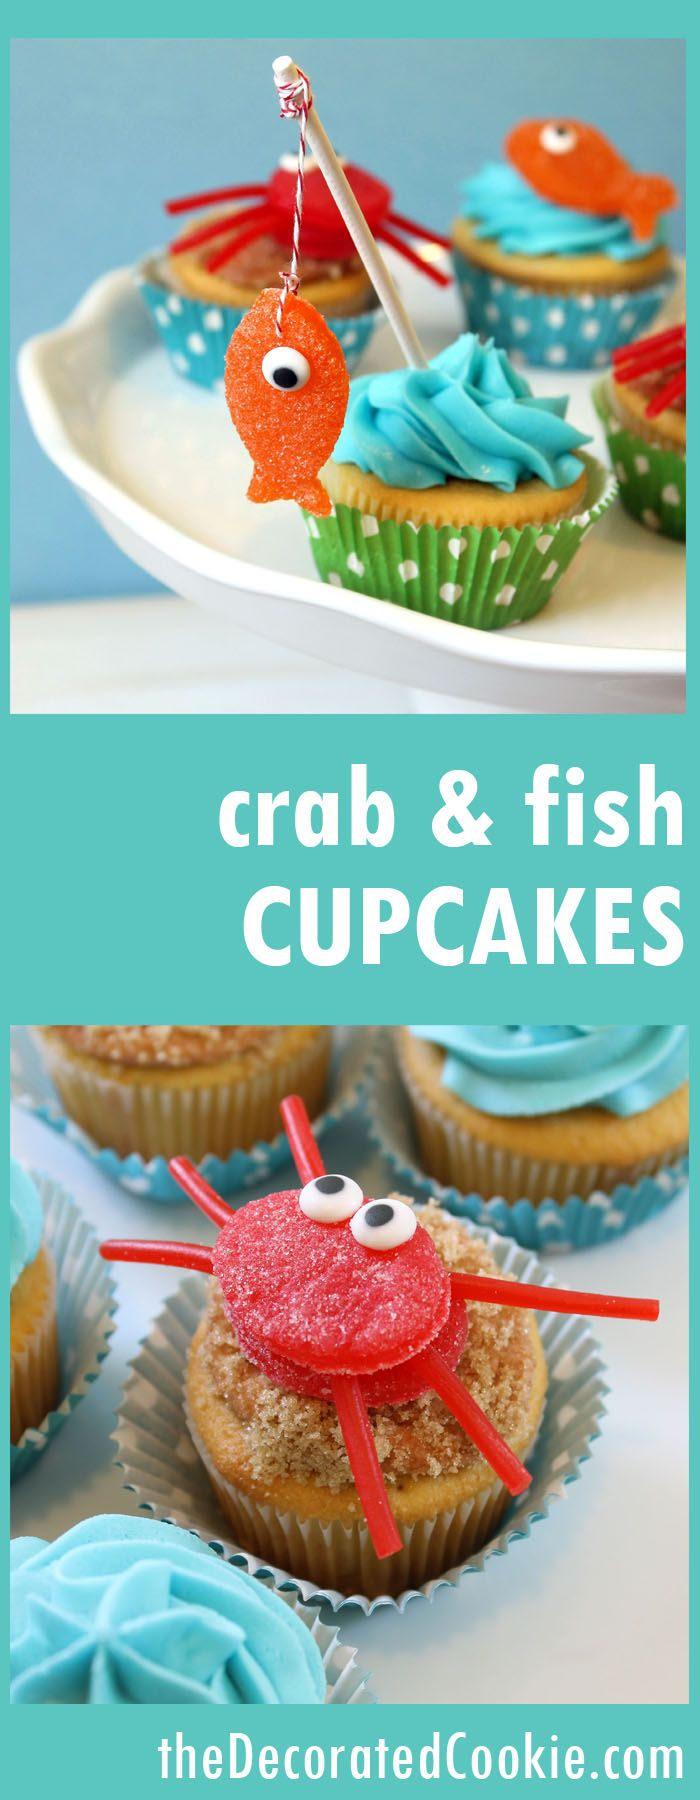 gone fishing cupcakes -- gumdrop crab and fish cupcakes